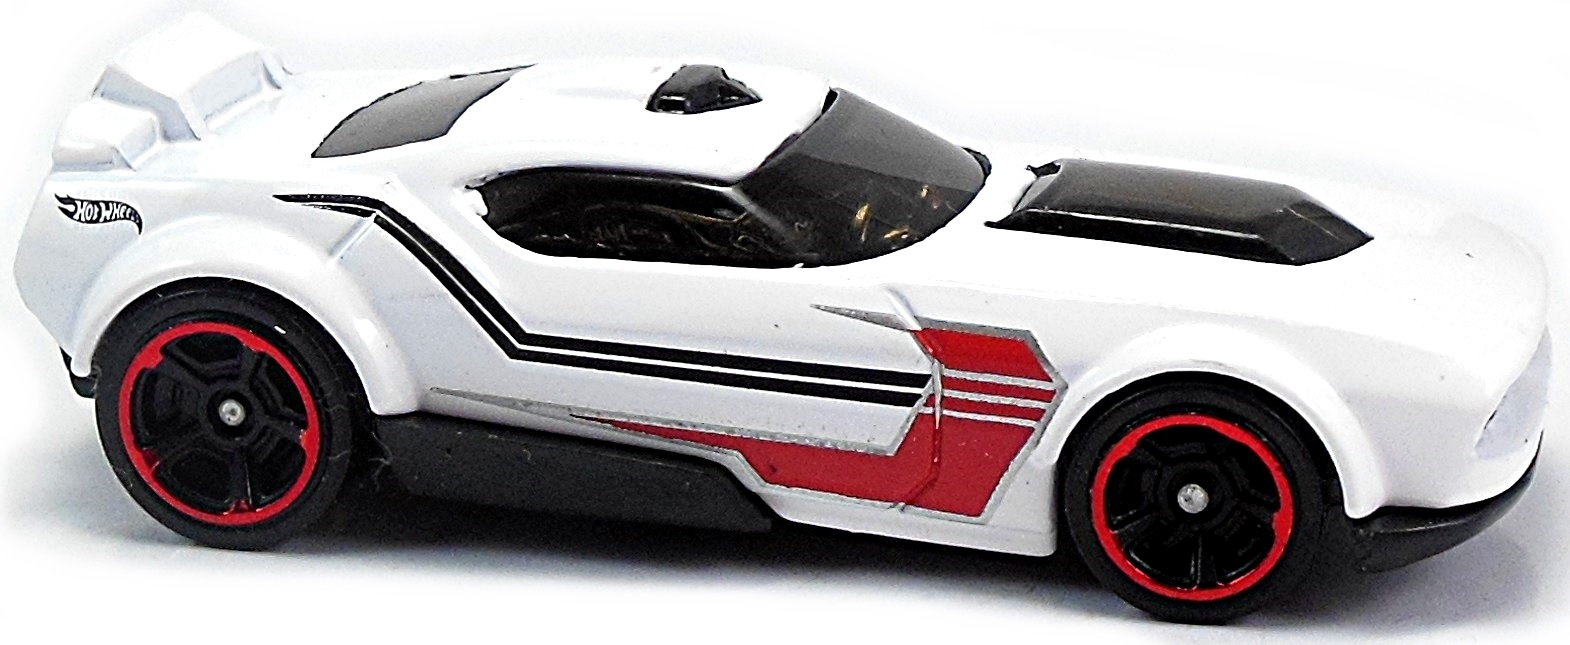 2016-Speed Spider-Mystery Models Hot Wheels